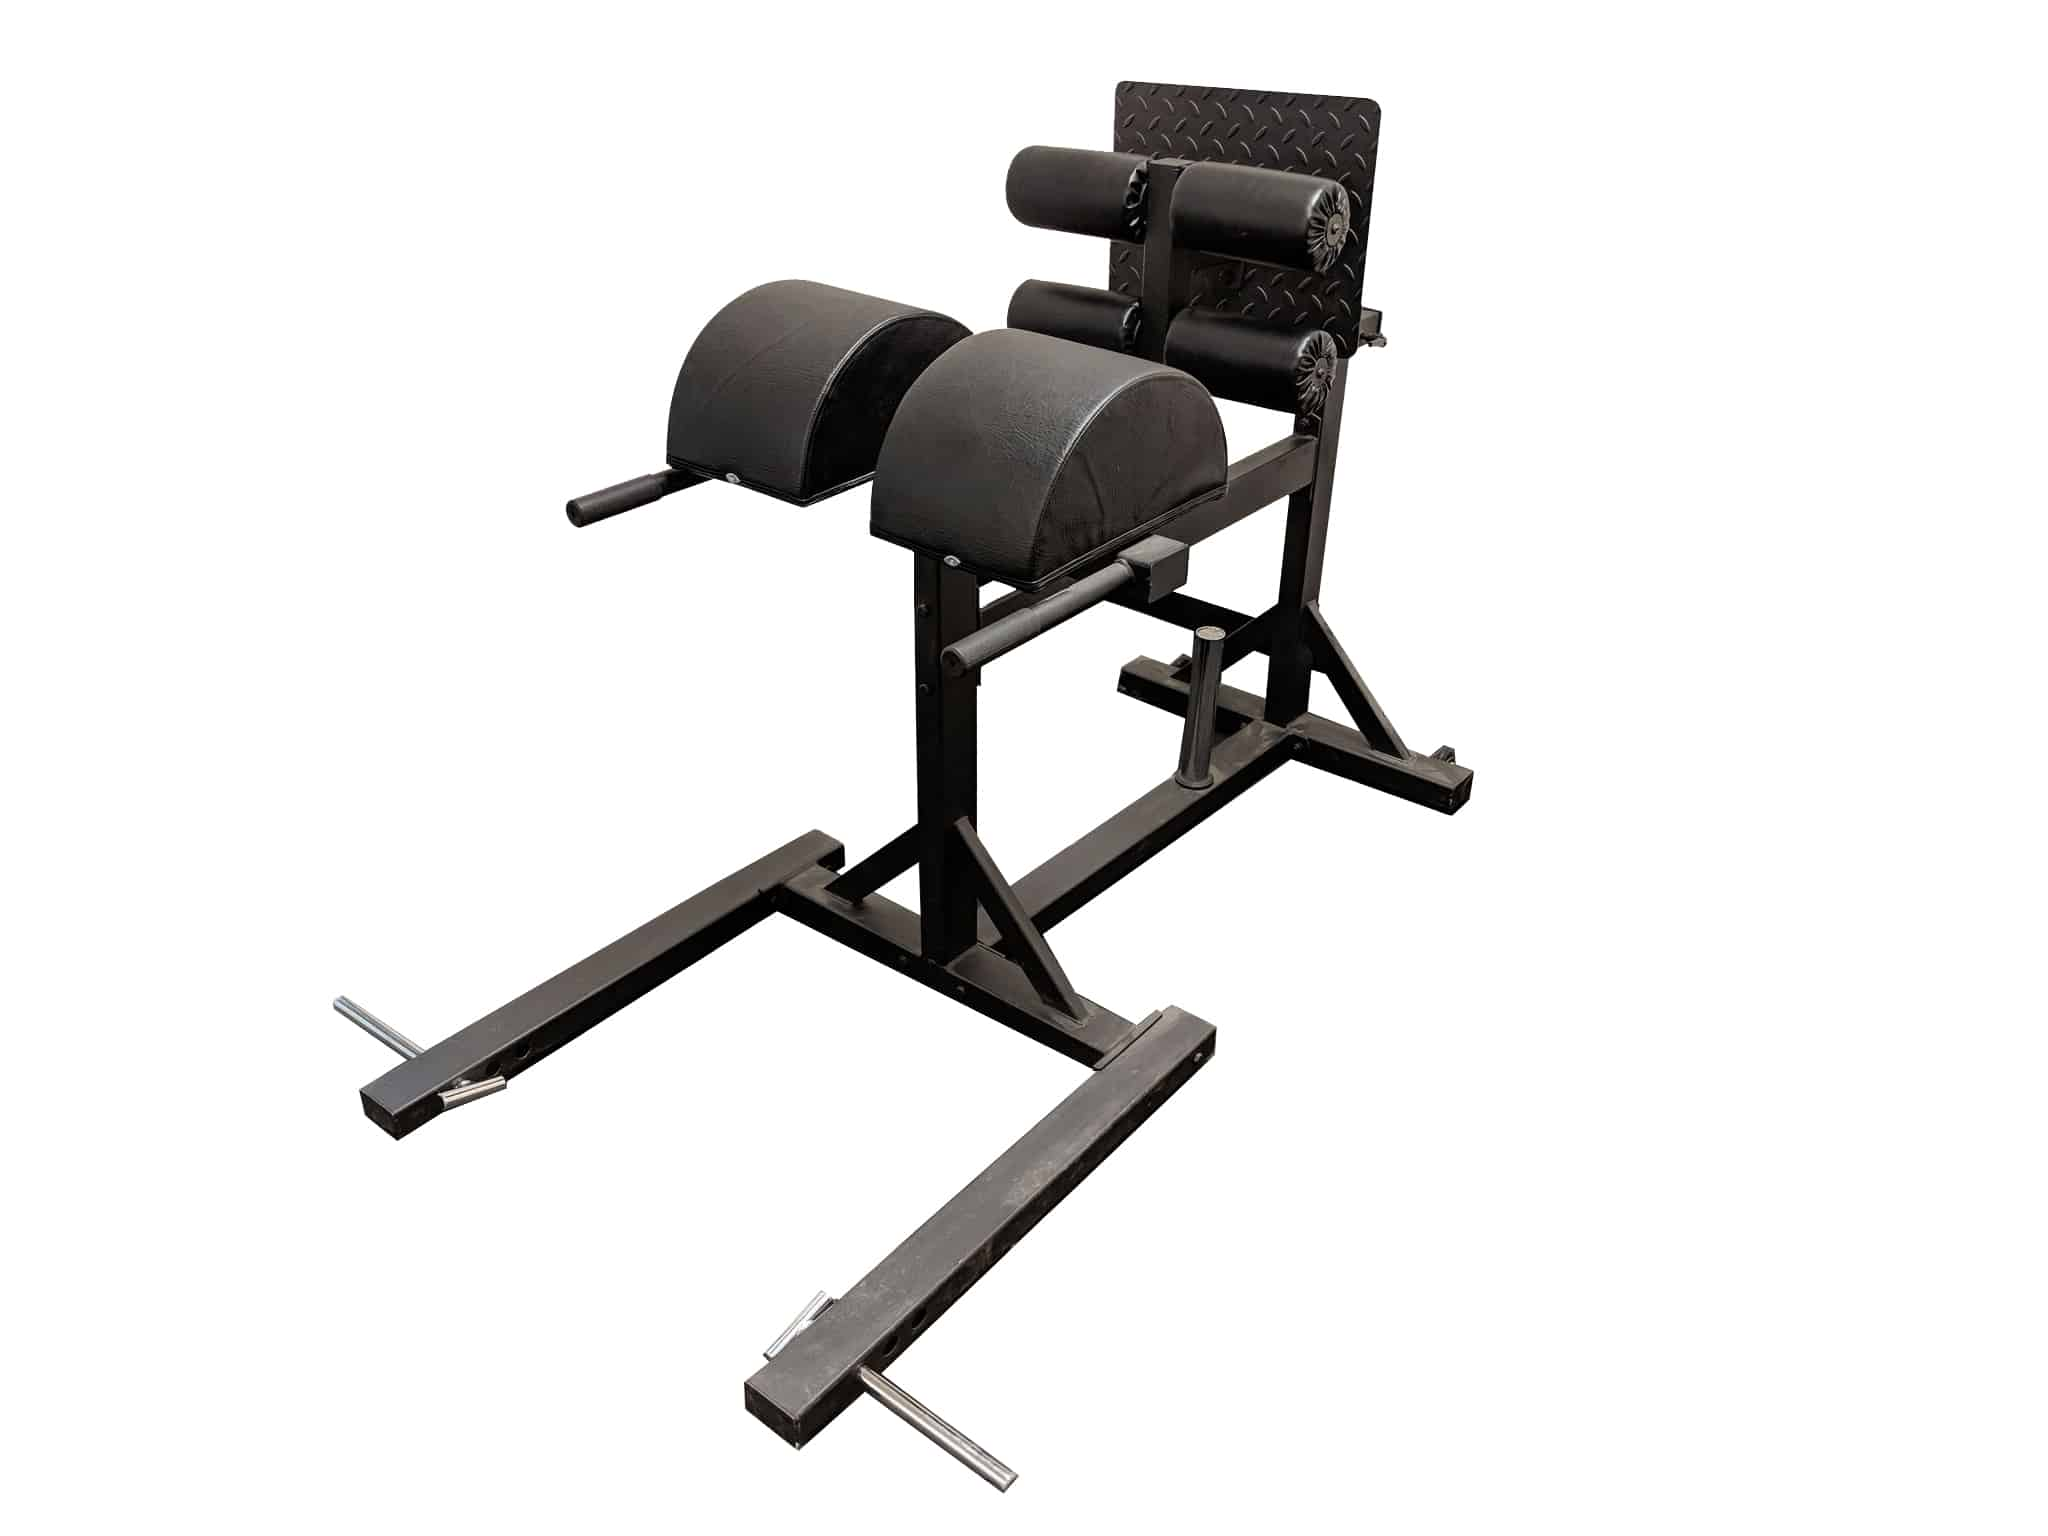 Glute Ham Raise Machine 2.0 By B.o.S.